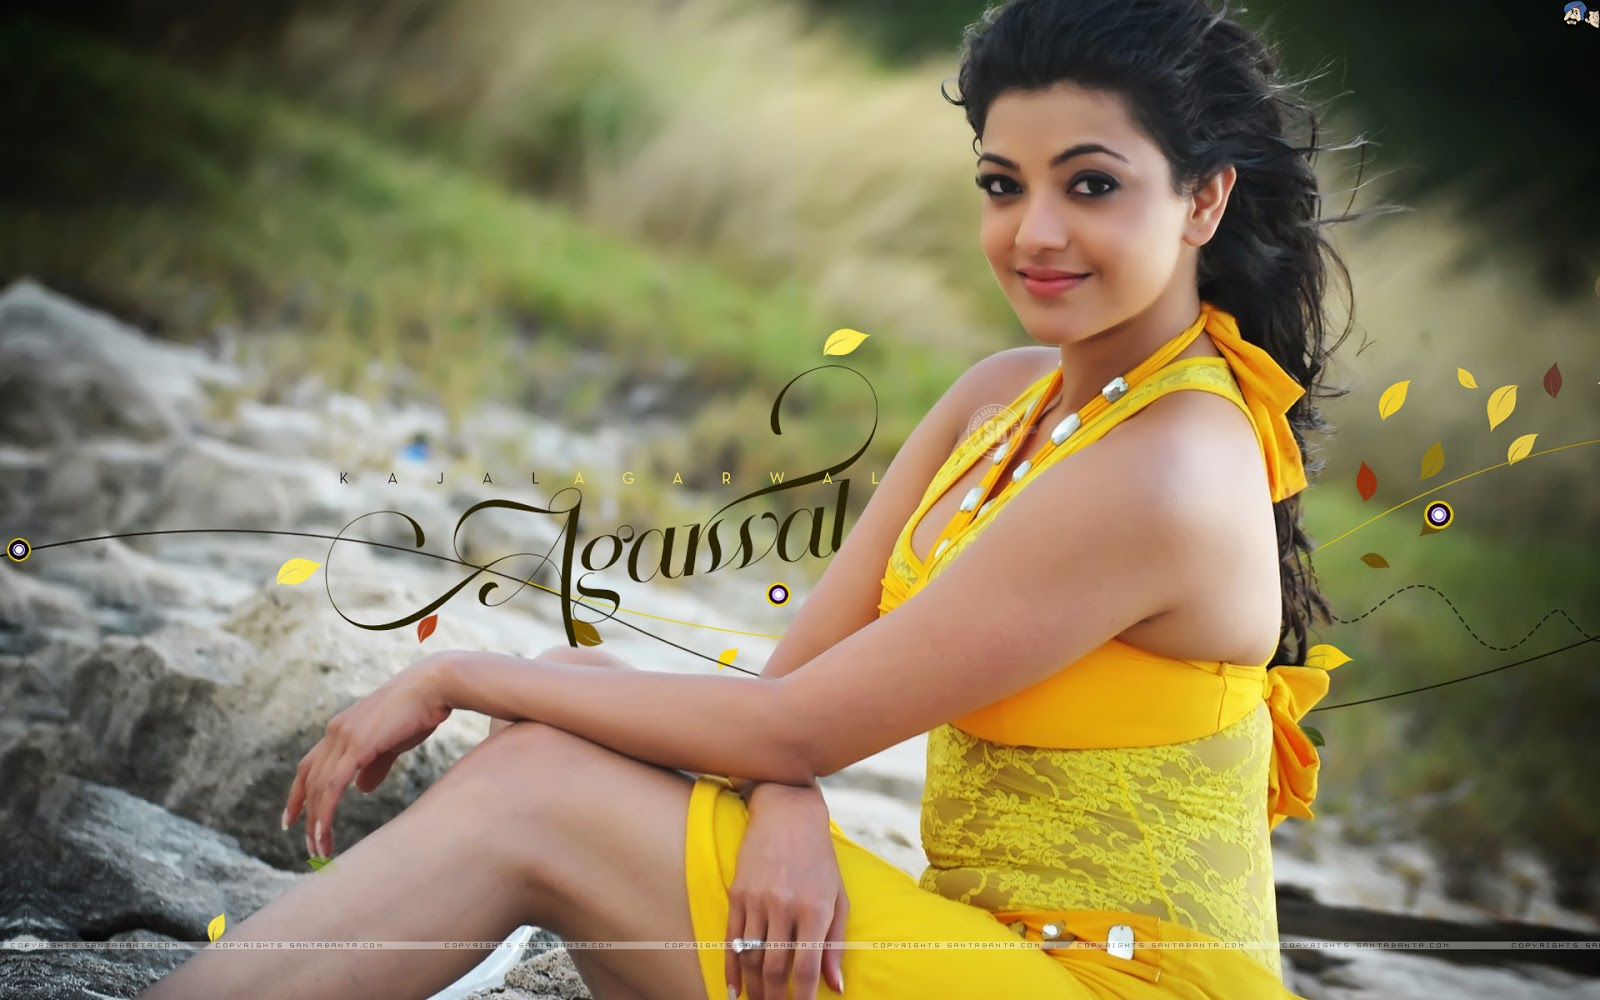 100%Hdwallpapers: Kajal Agarwal HD Wallpapers Free Download